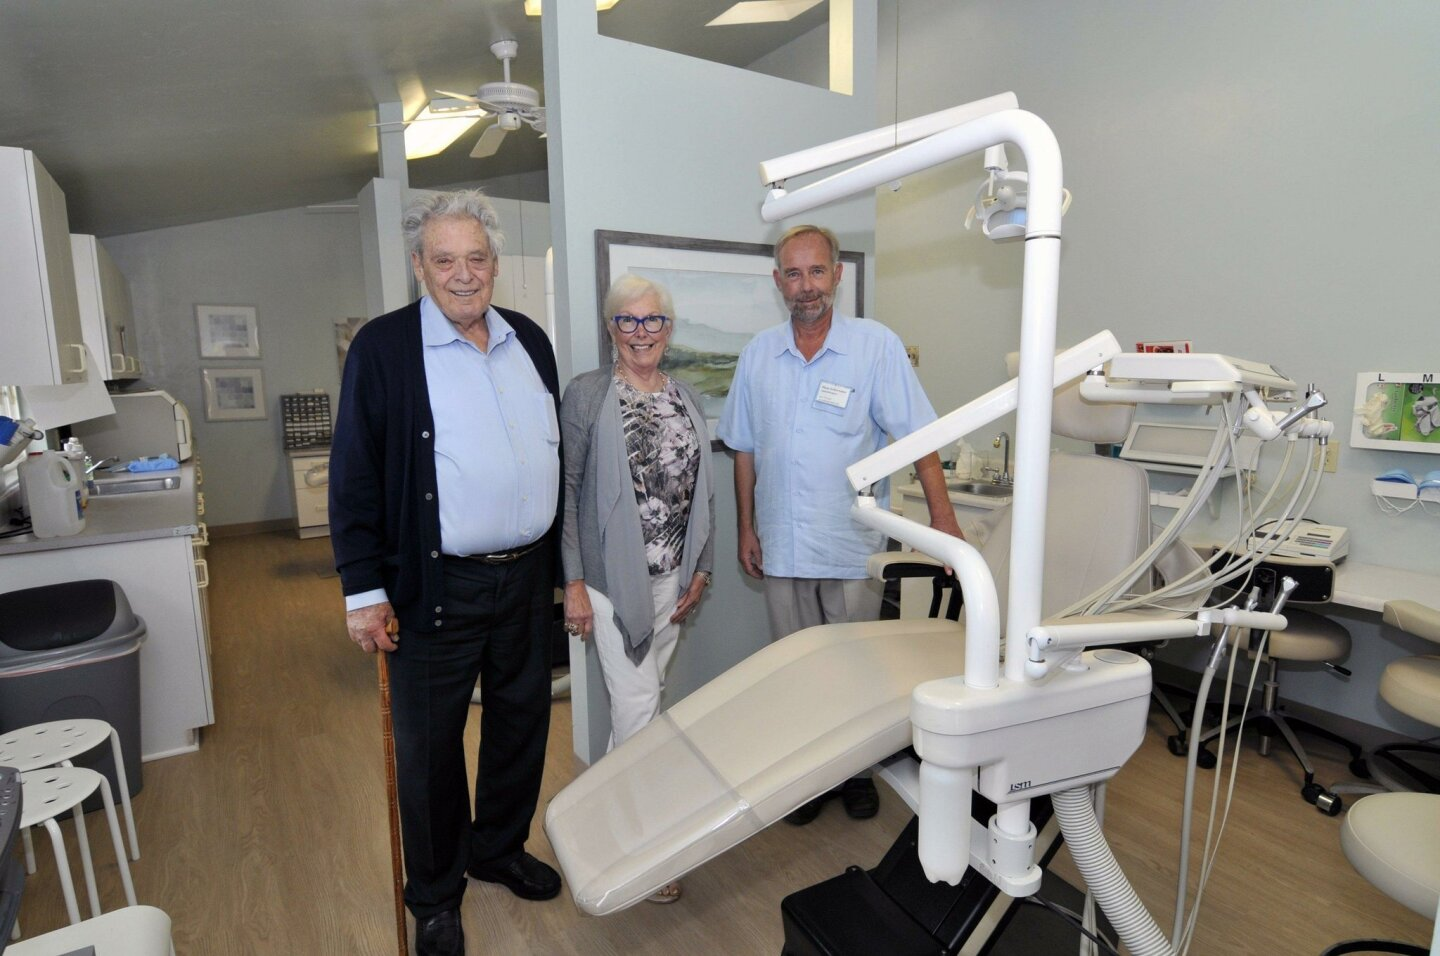 Malcolm McQueen and Ruby Edman tour the new facility with St. Leo's Dental Clinic board member Klaus Gubernator